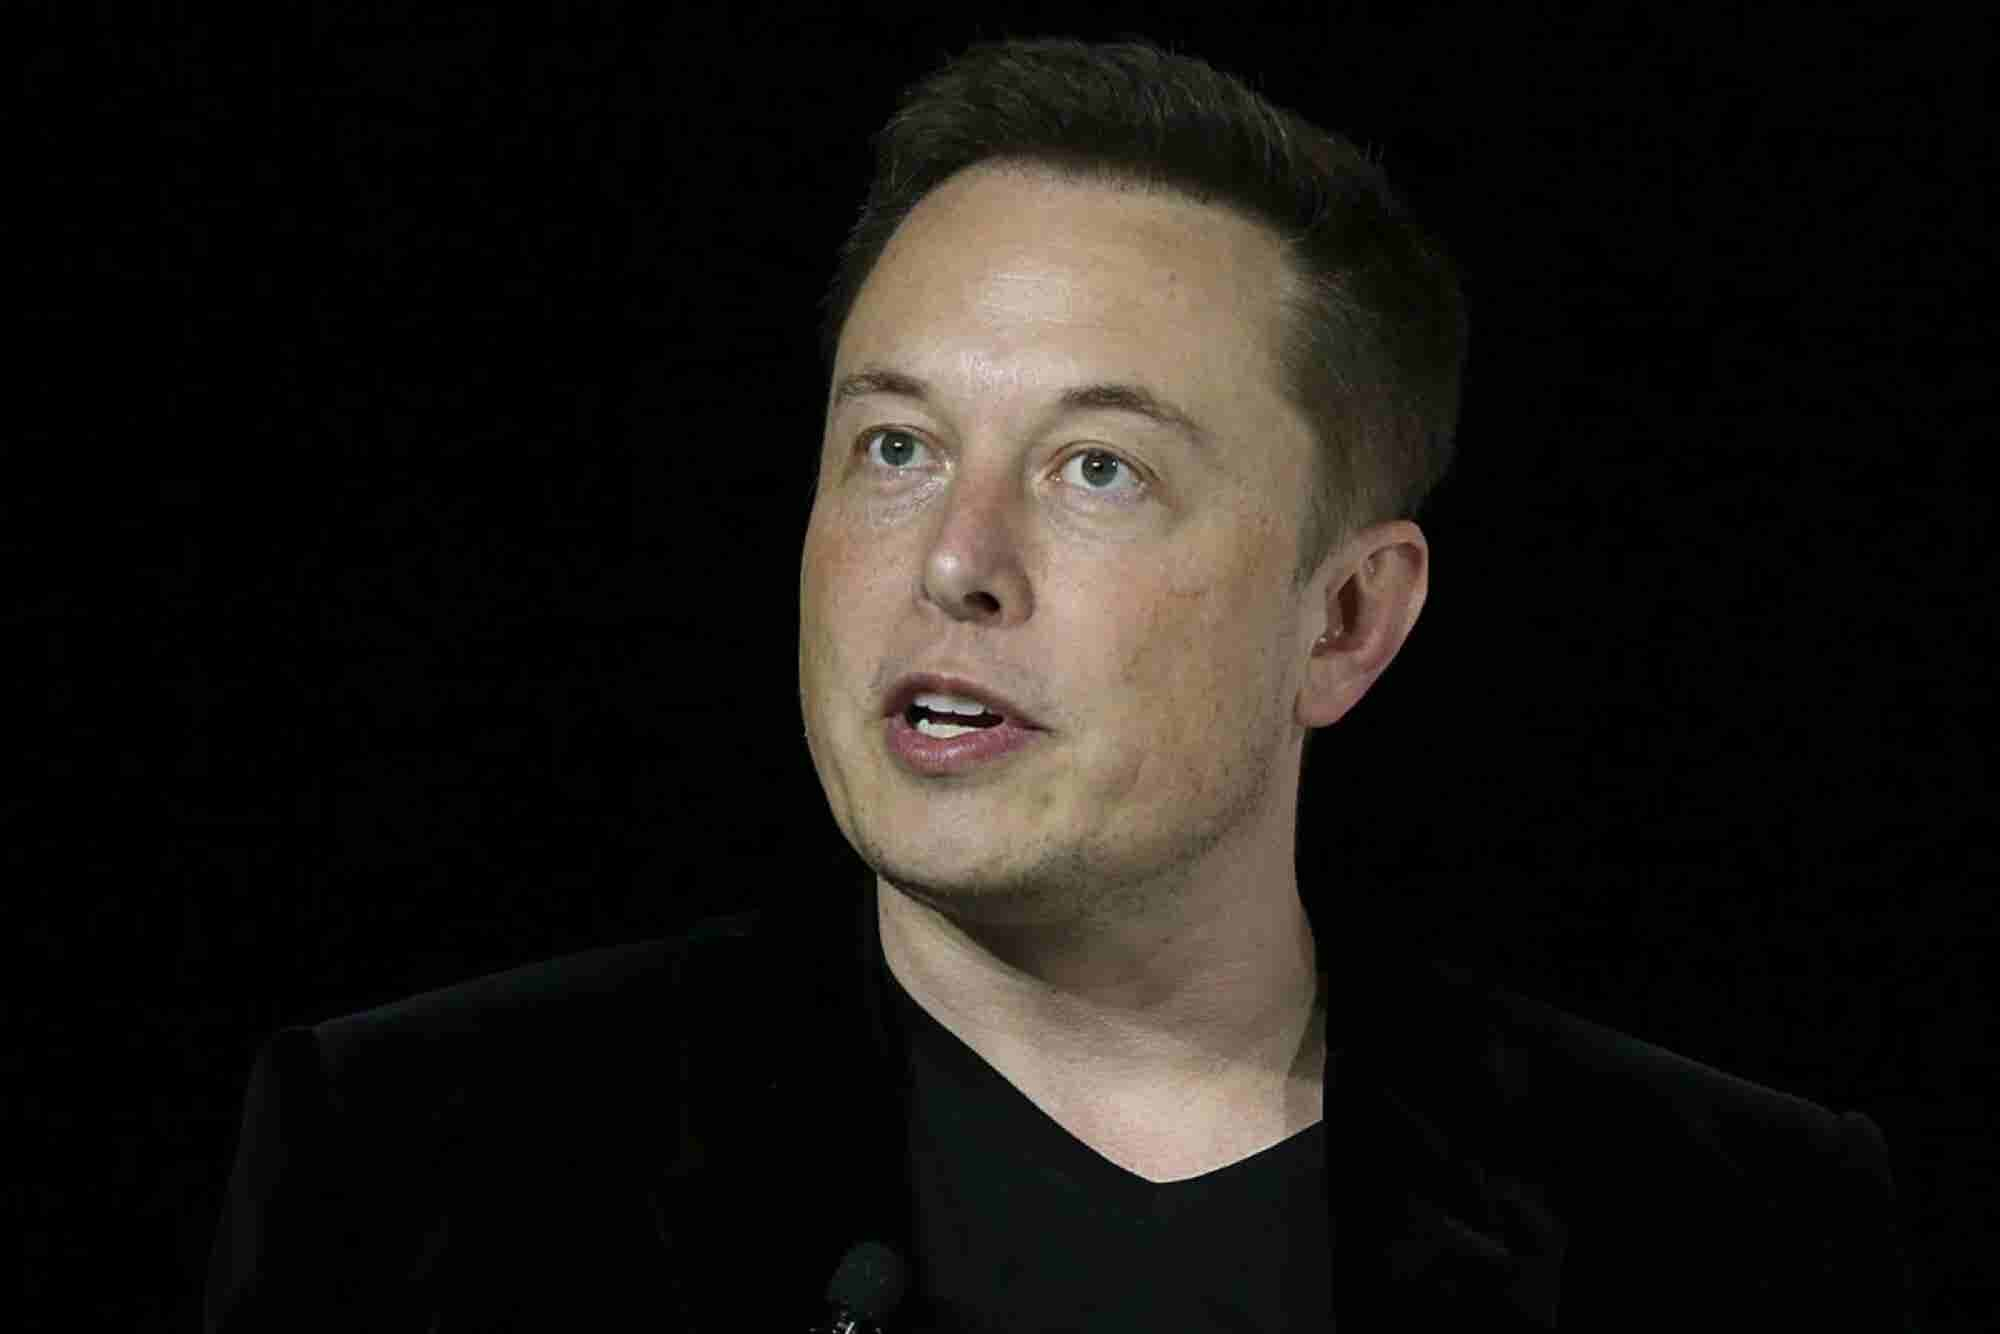 An Emotional Elon Musk Lays Out Tesla's Future Plans and Admits He Has a Problem With Time